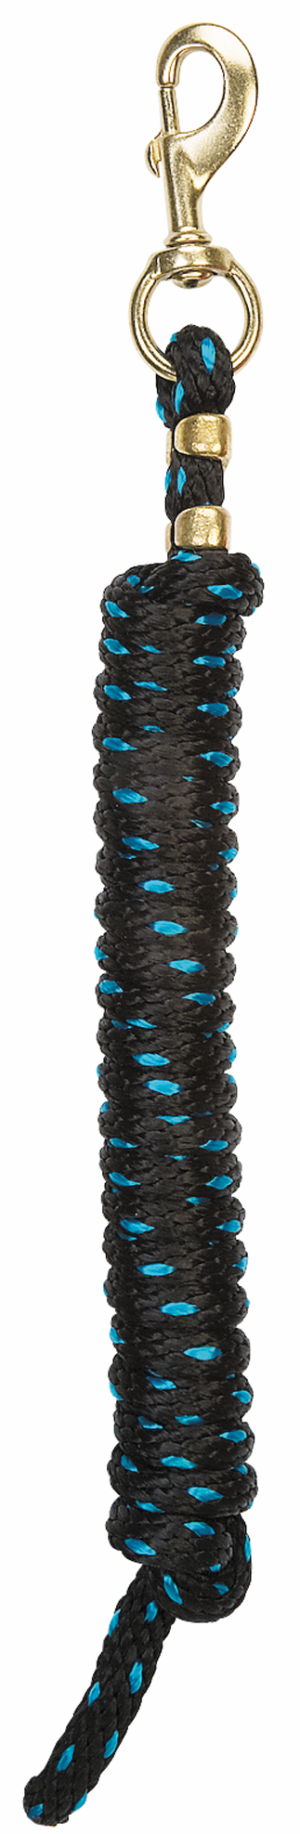 Weaver Leather Poly Lead Rope Black Turquoise Speckle